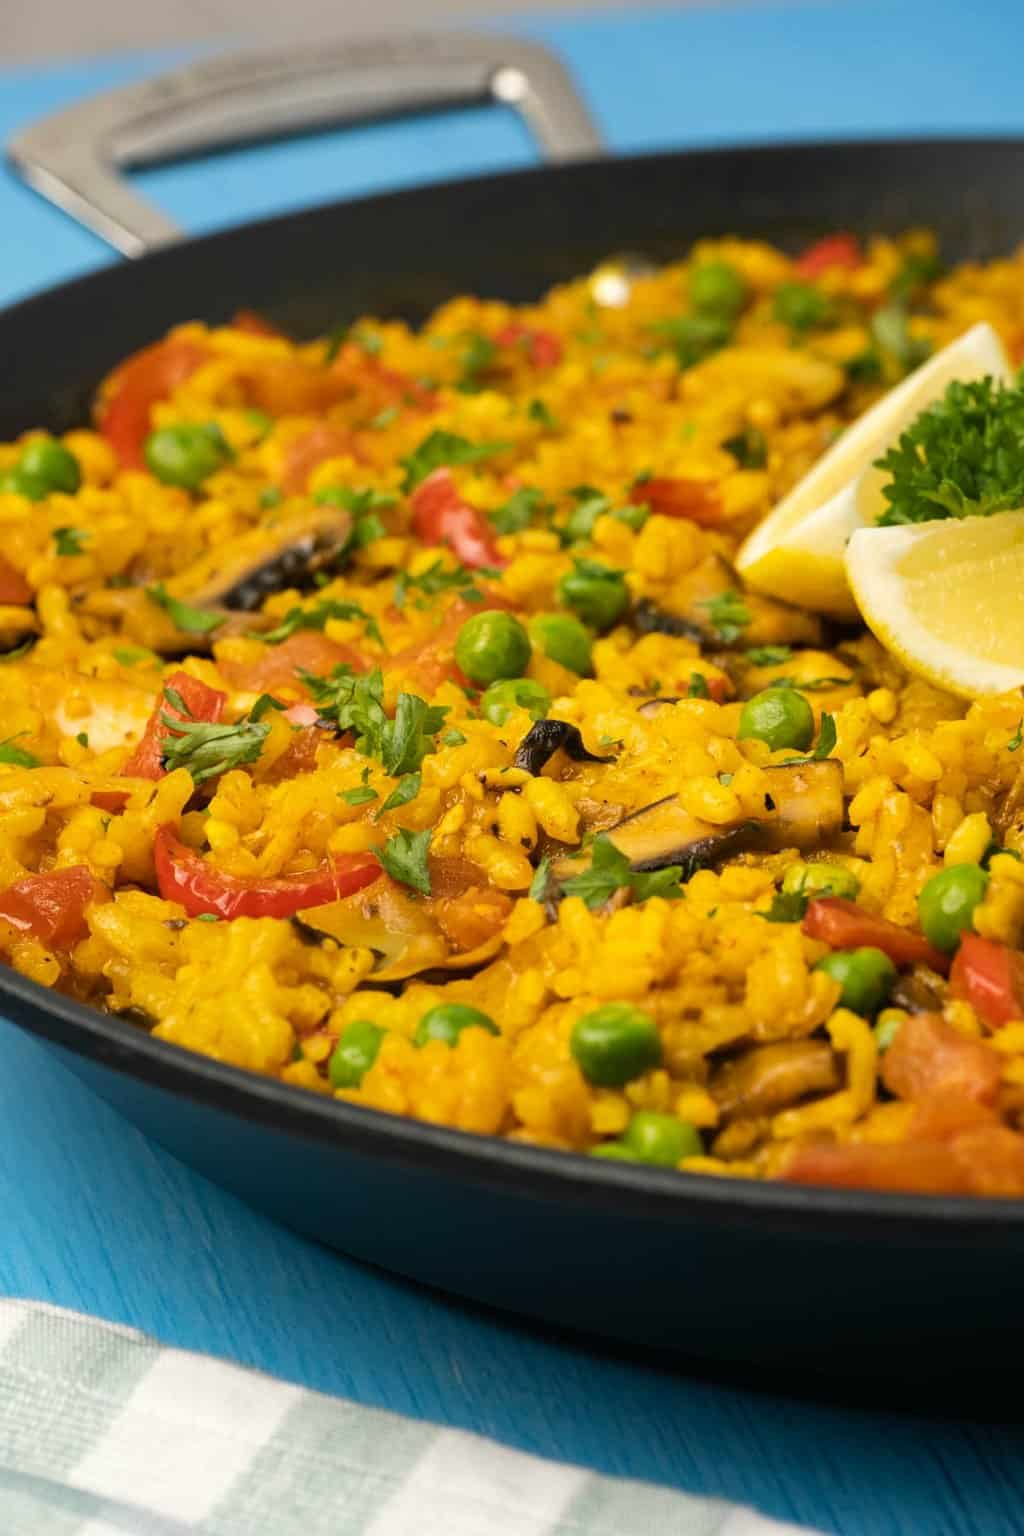 Vegan paella in a black paella pan.